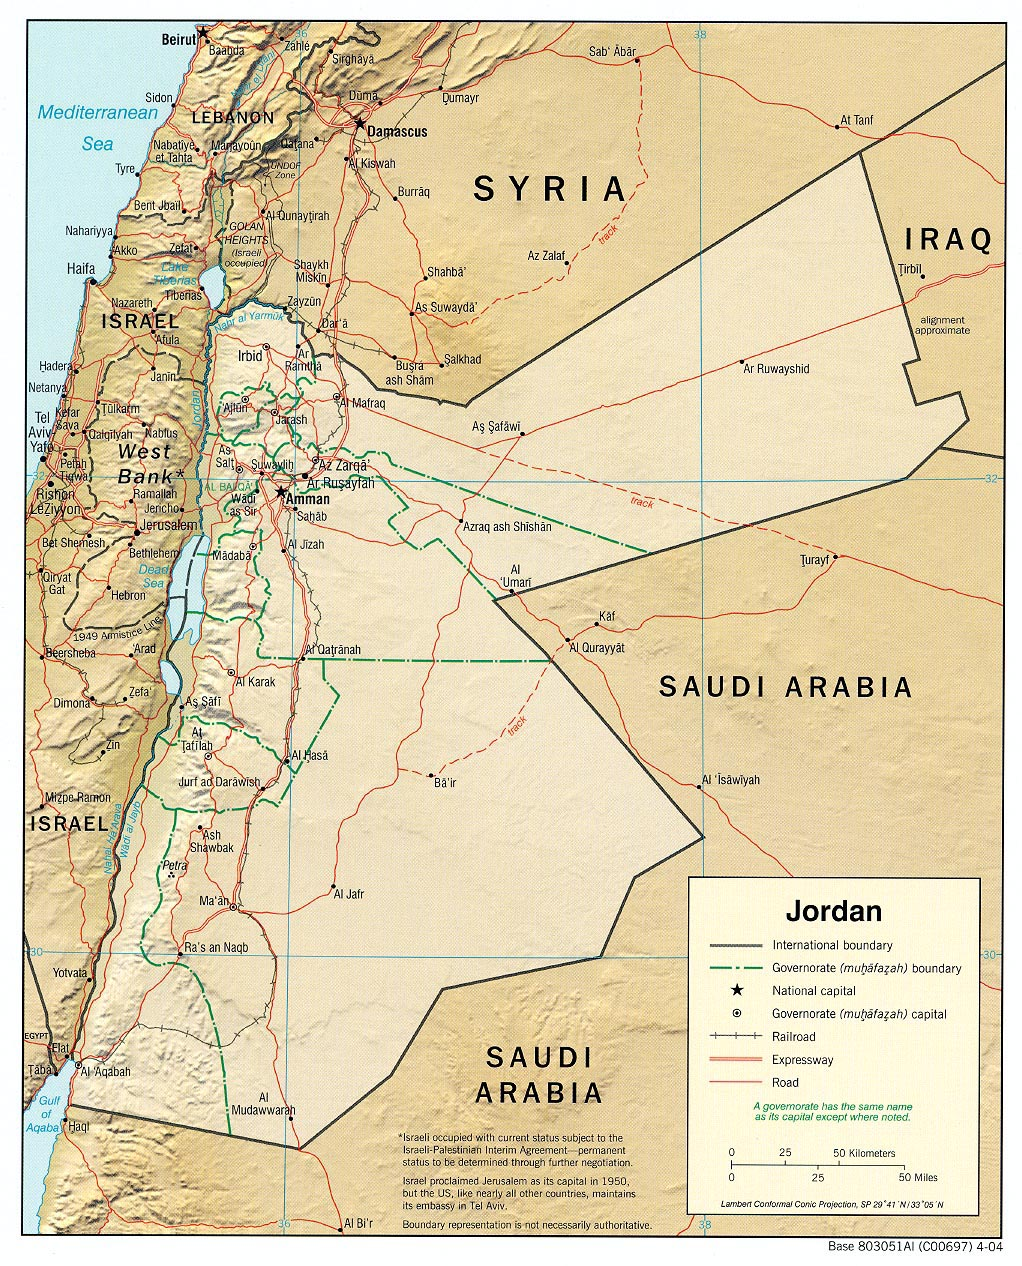 Detailed administrative and political map of Jordan Jordan detailed